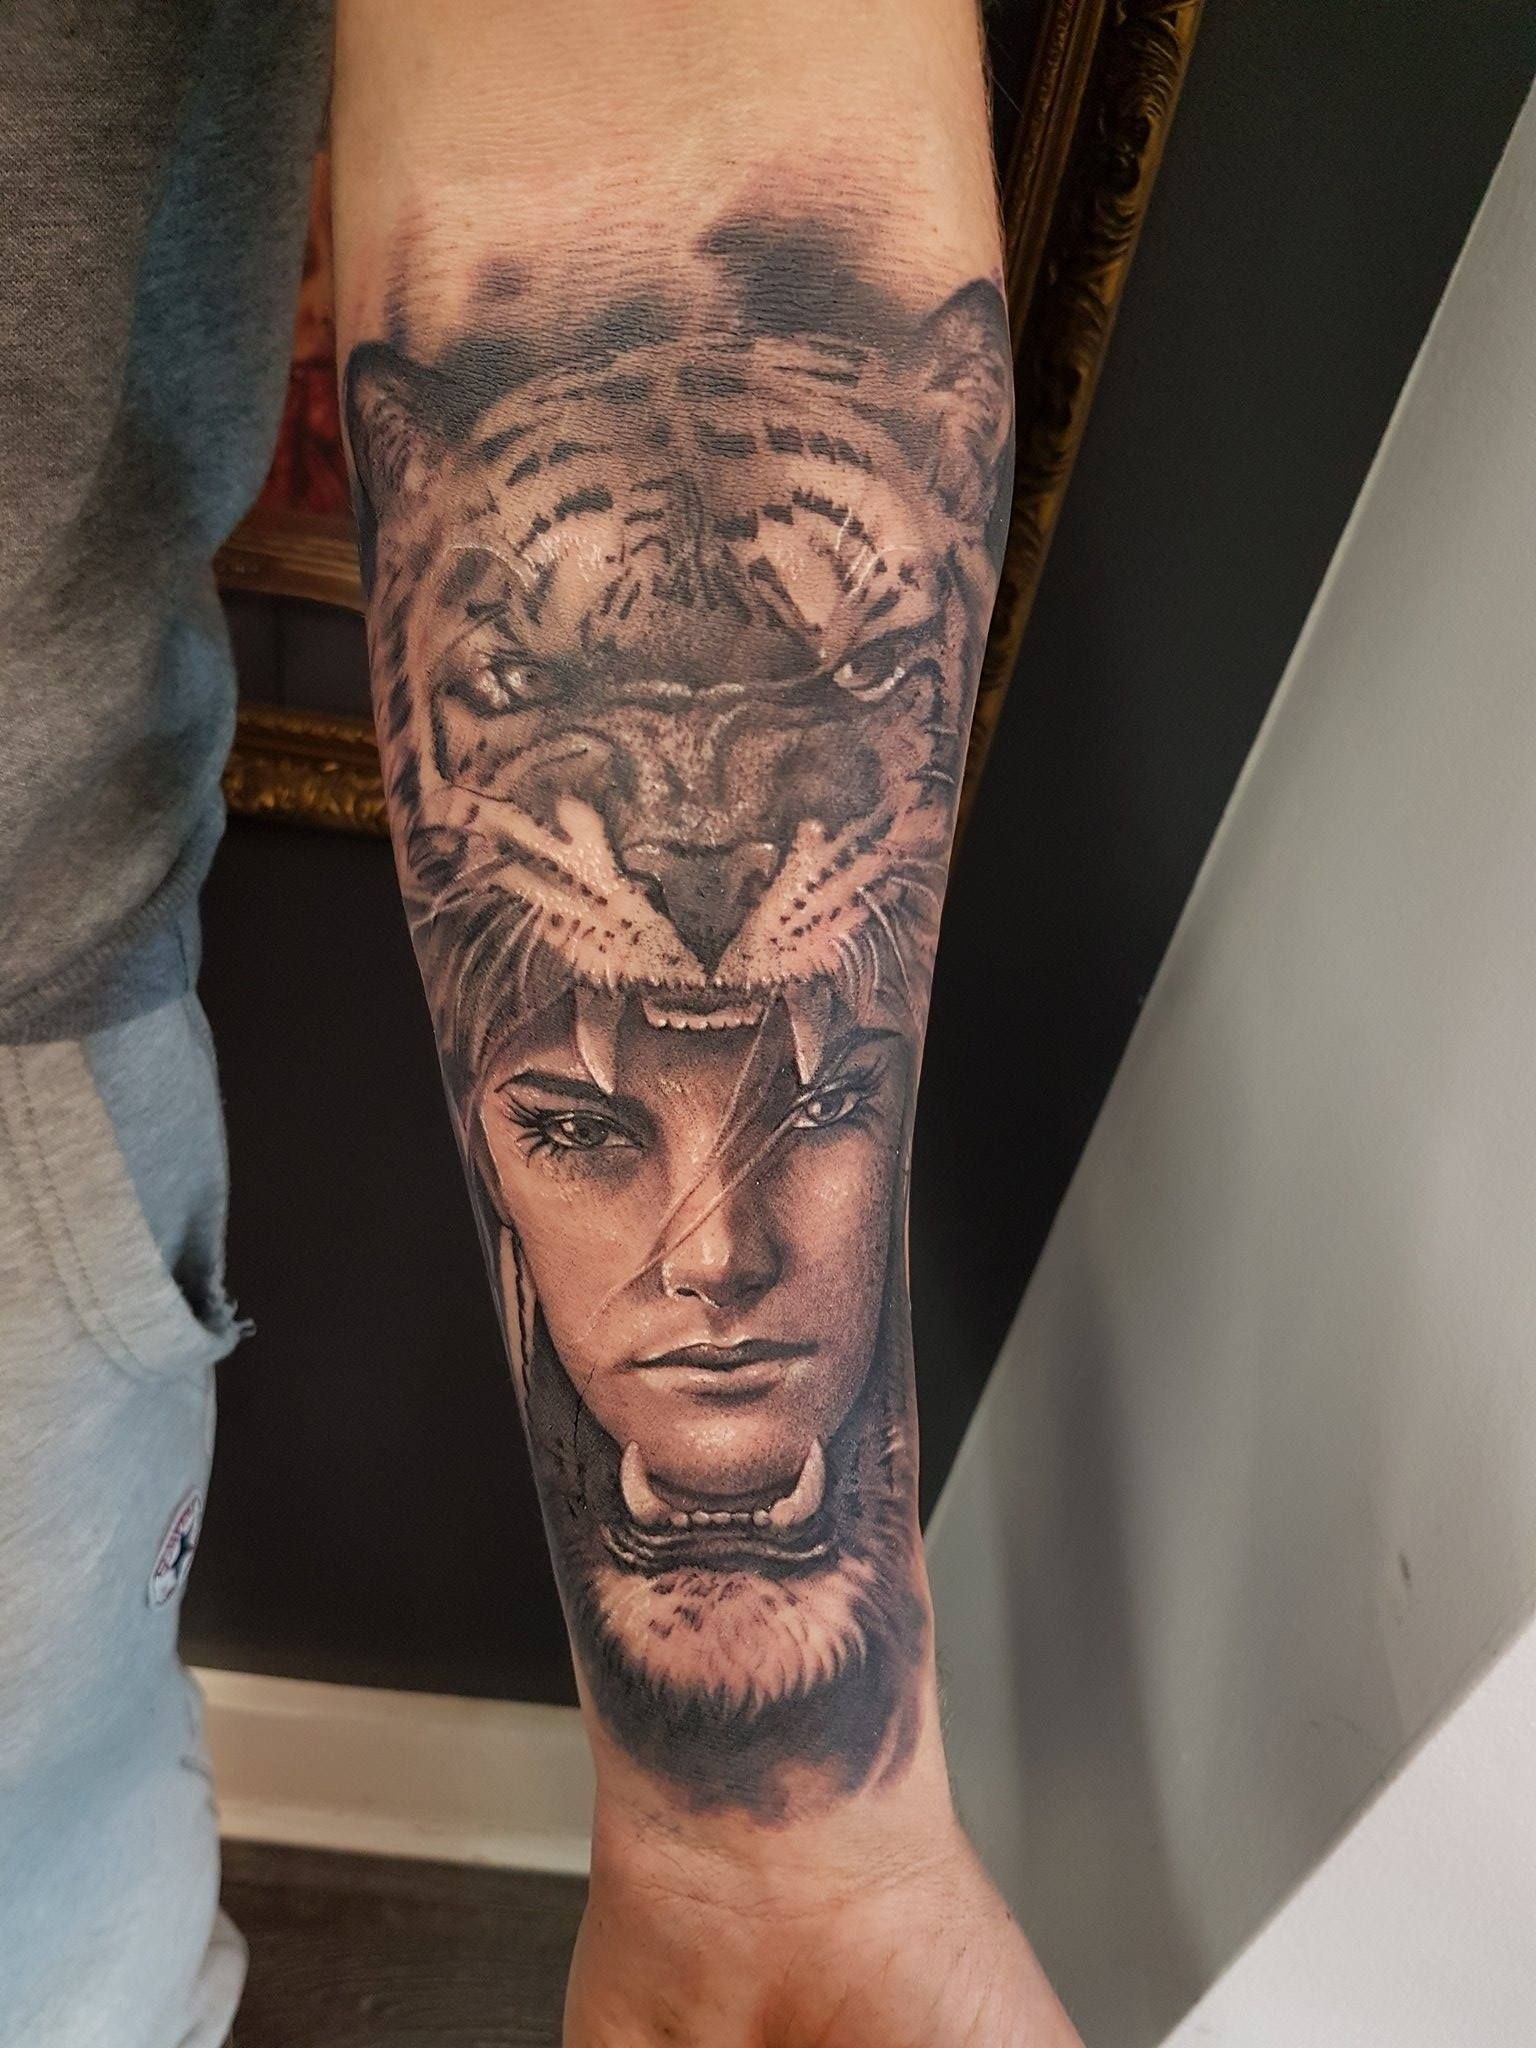 Hood Tattoos : tattoos, Tiger, Tattoo, Limited, Availability, Newtestamenttattoostudio, Tattoos,, Studio,, Salvation